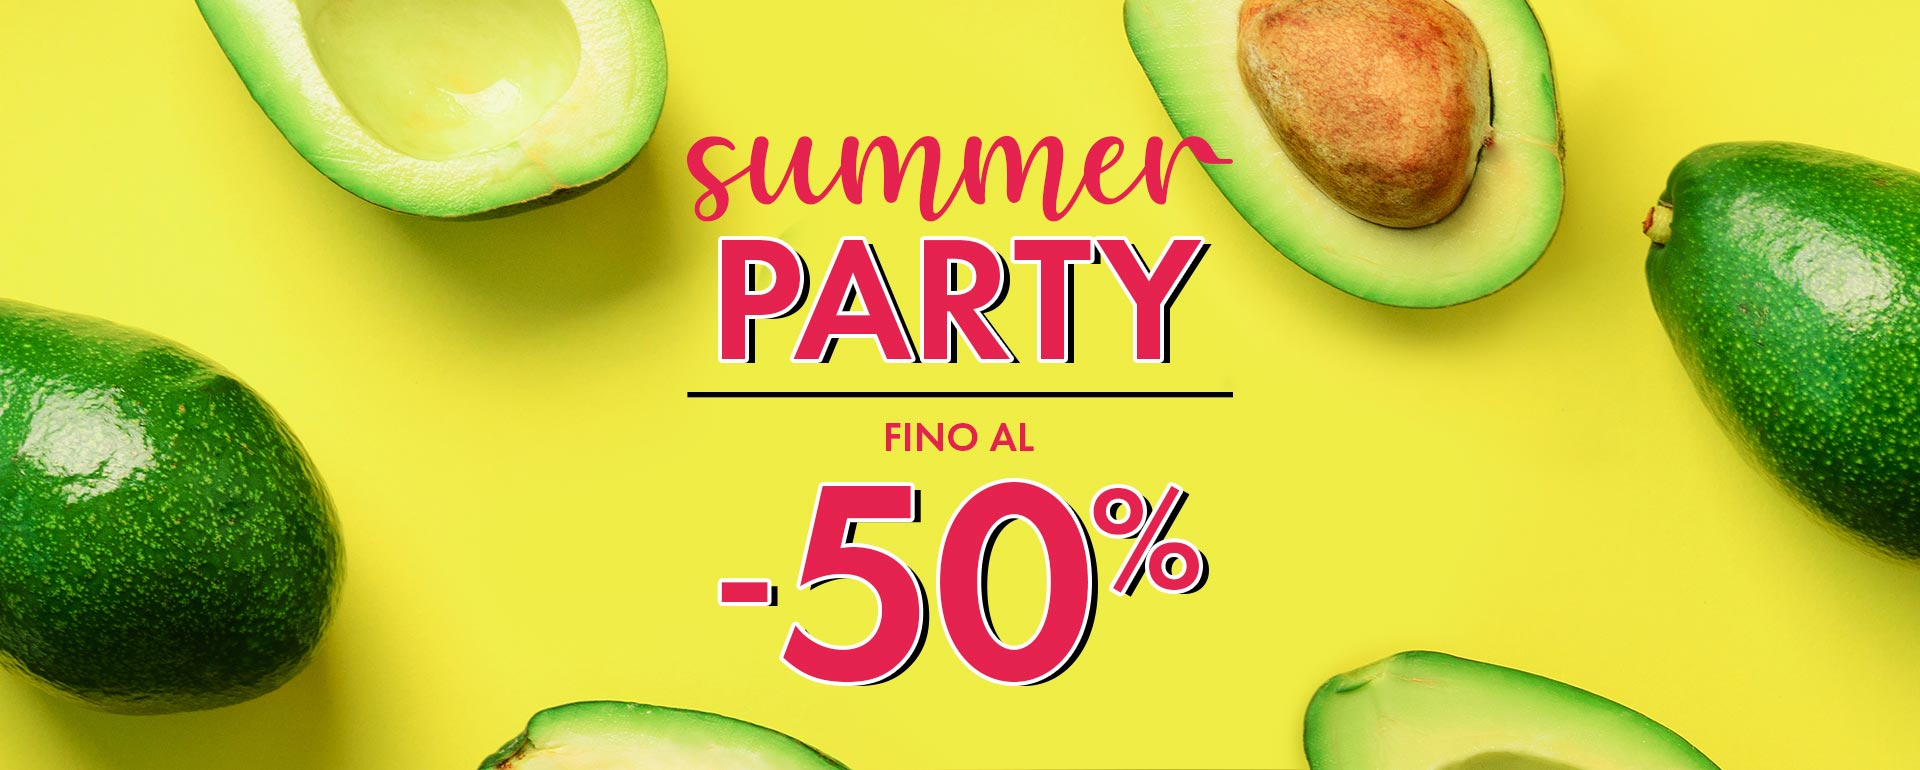 Promo summer party - PUPA Milano